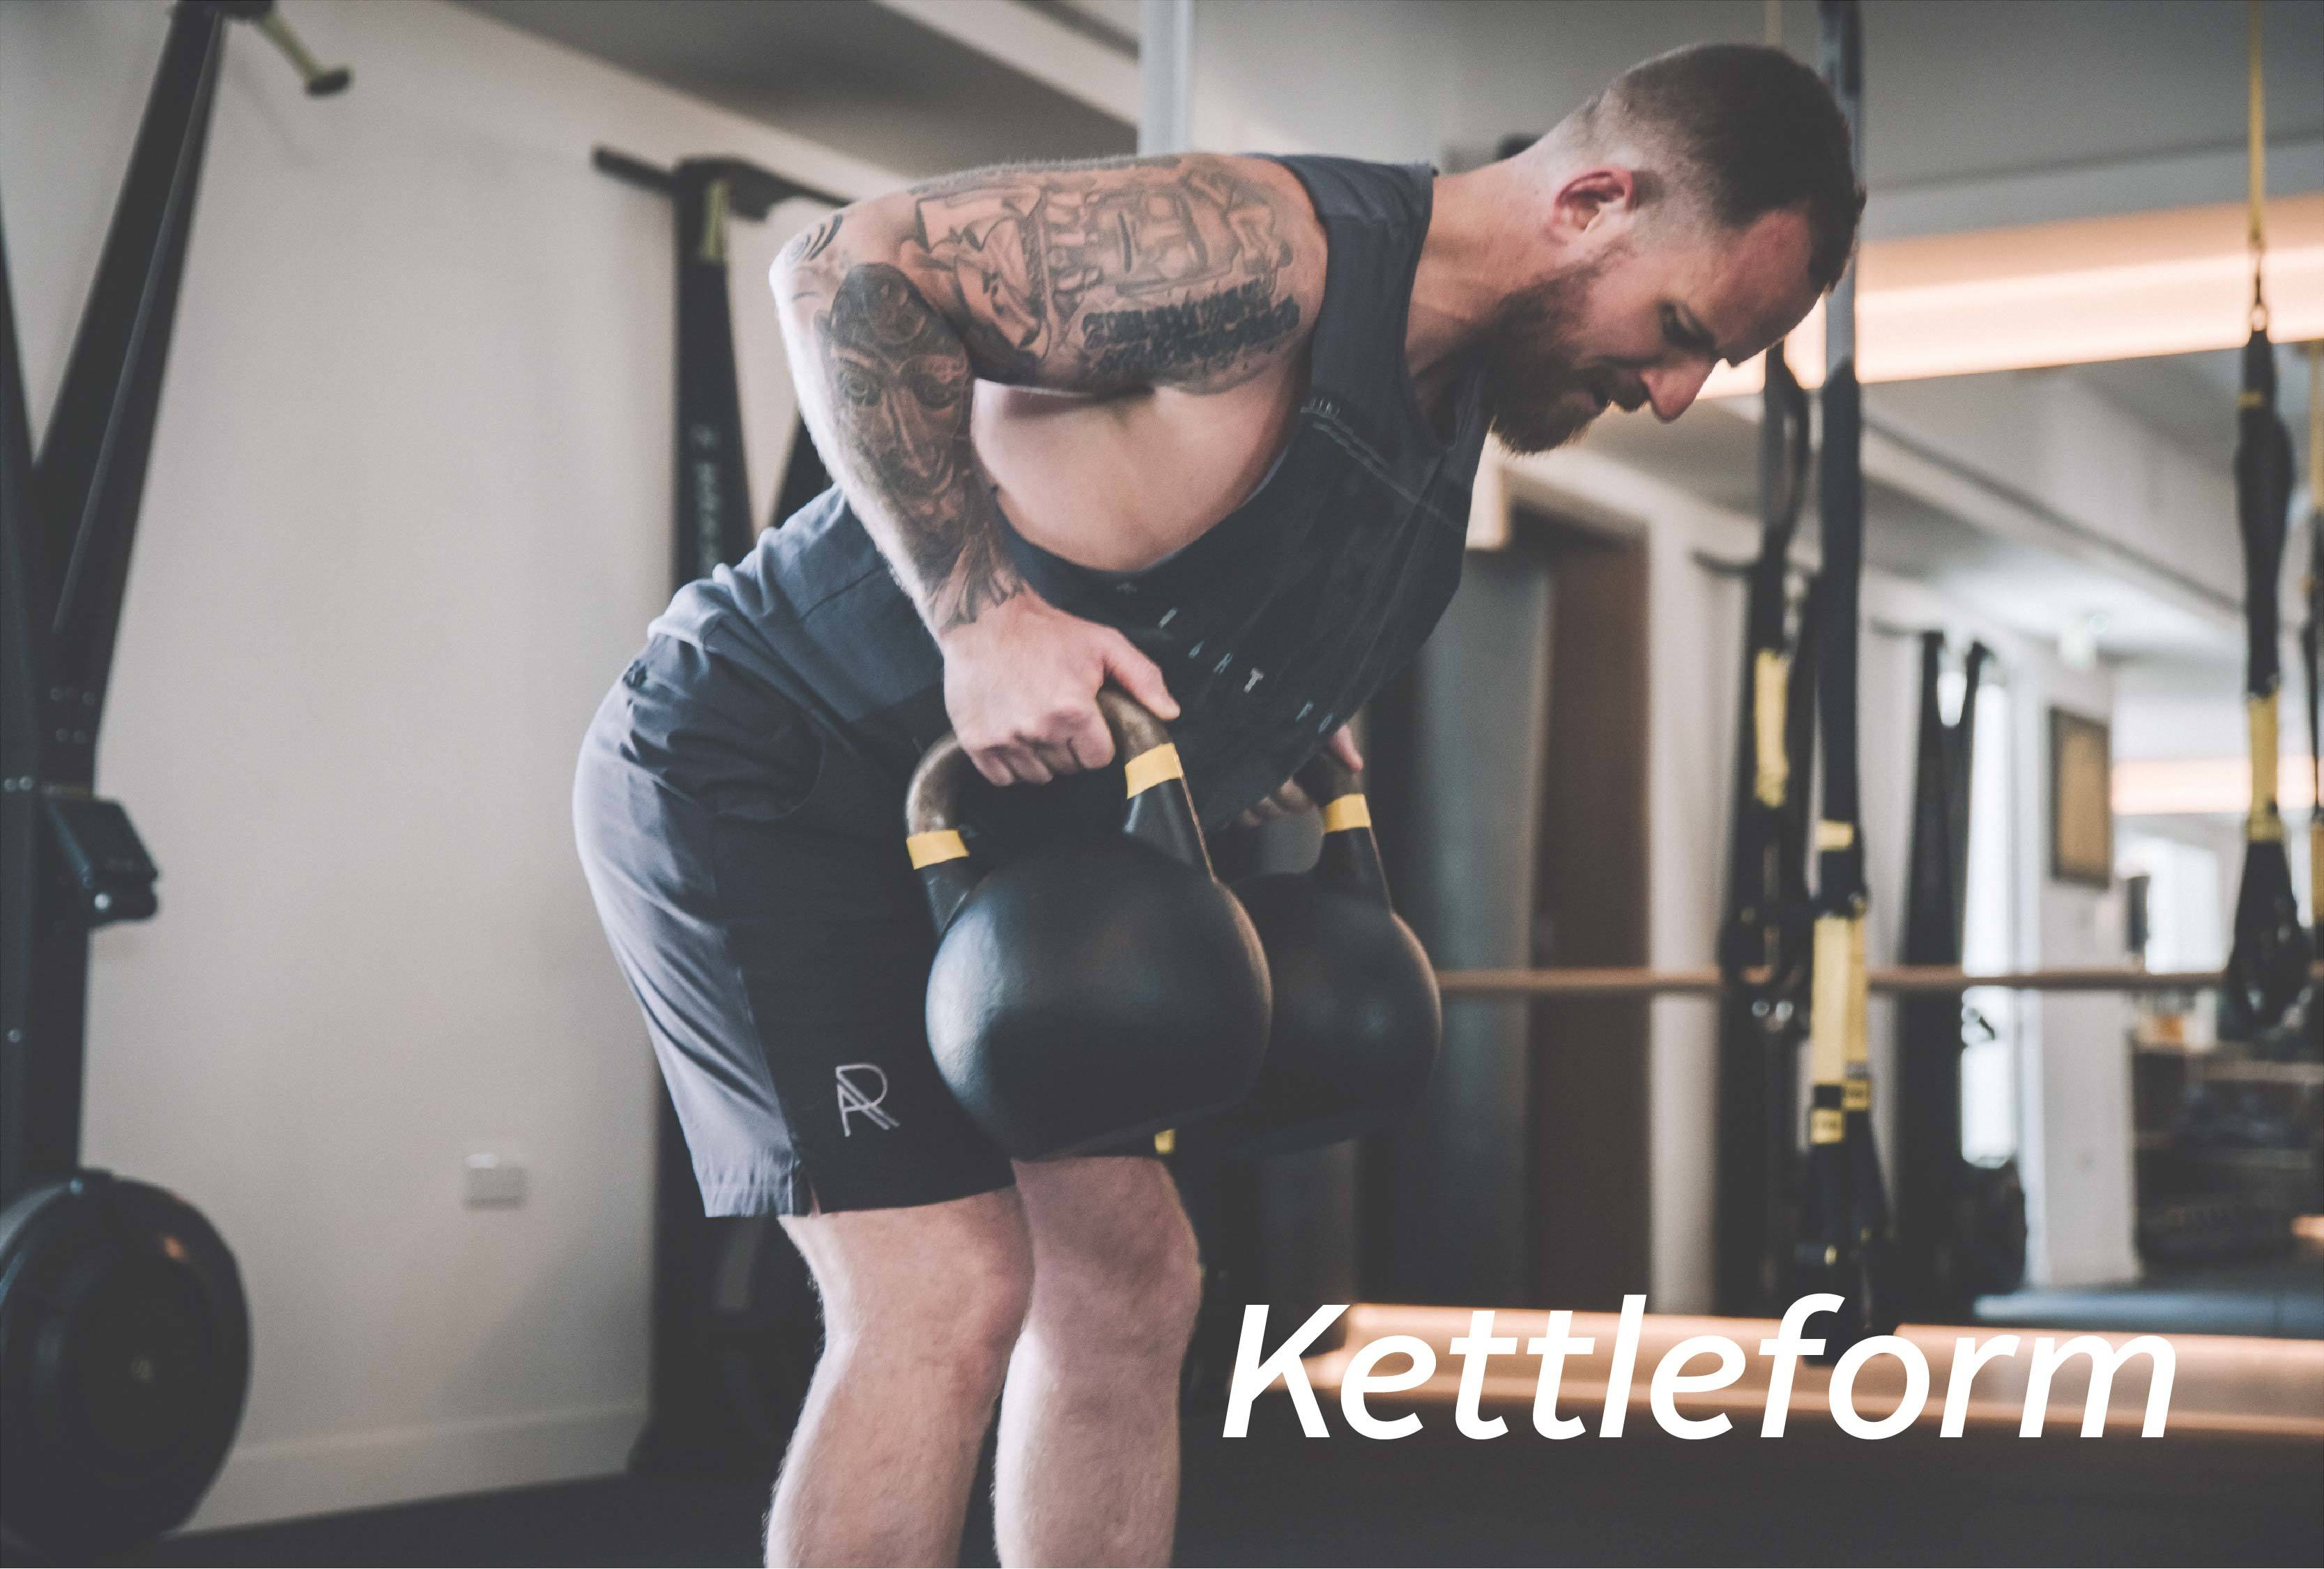 19 May KettleForm with Roberto